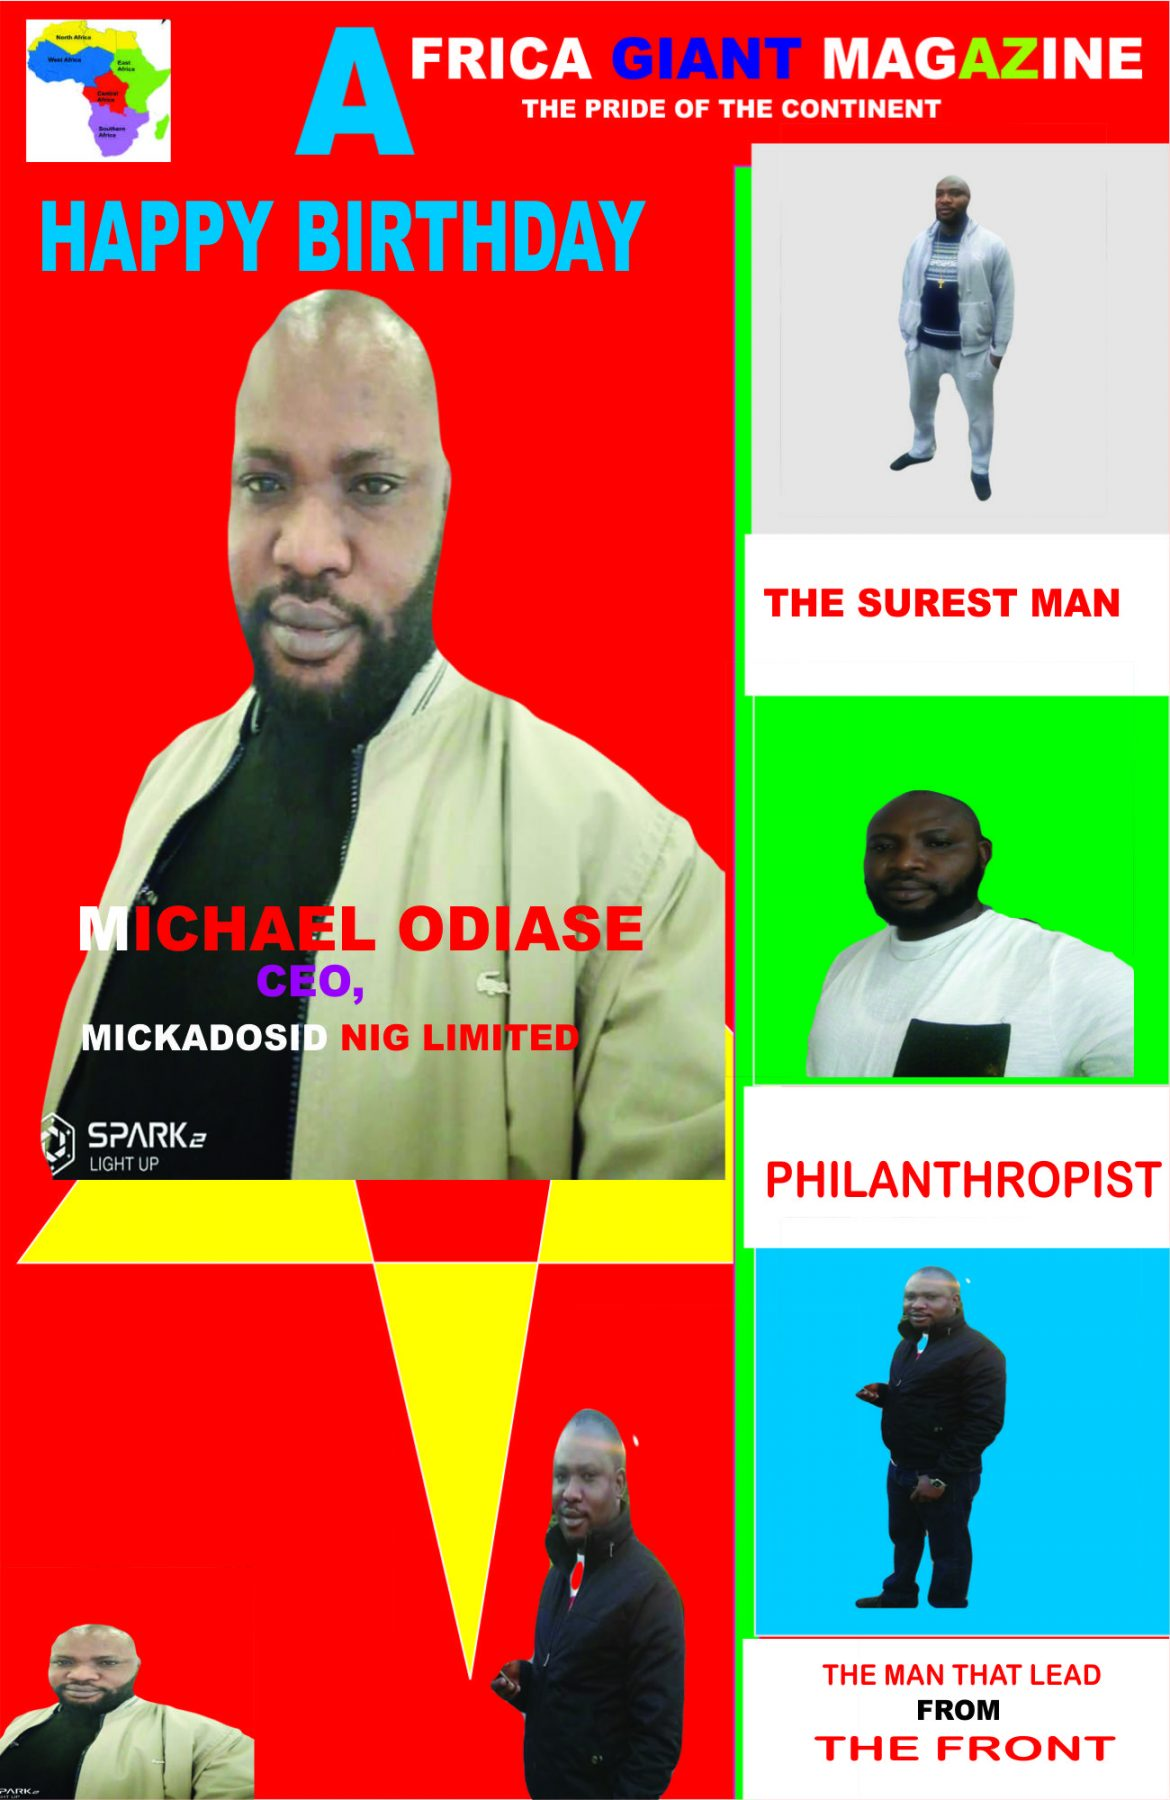 MICHAEL ODIASE IS PLUS ONE TODAY